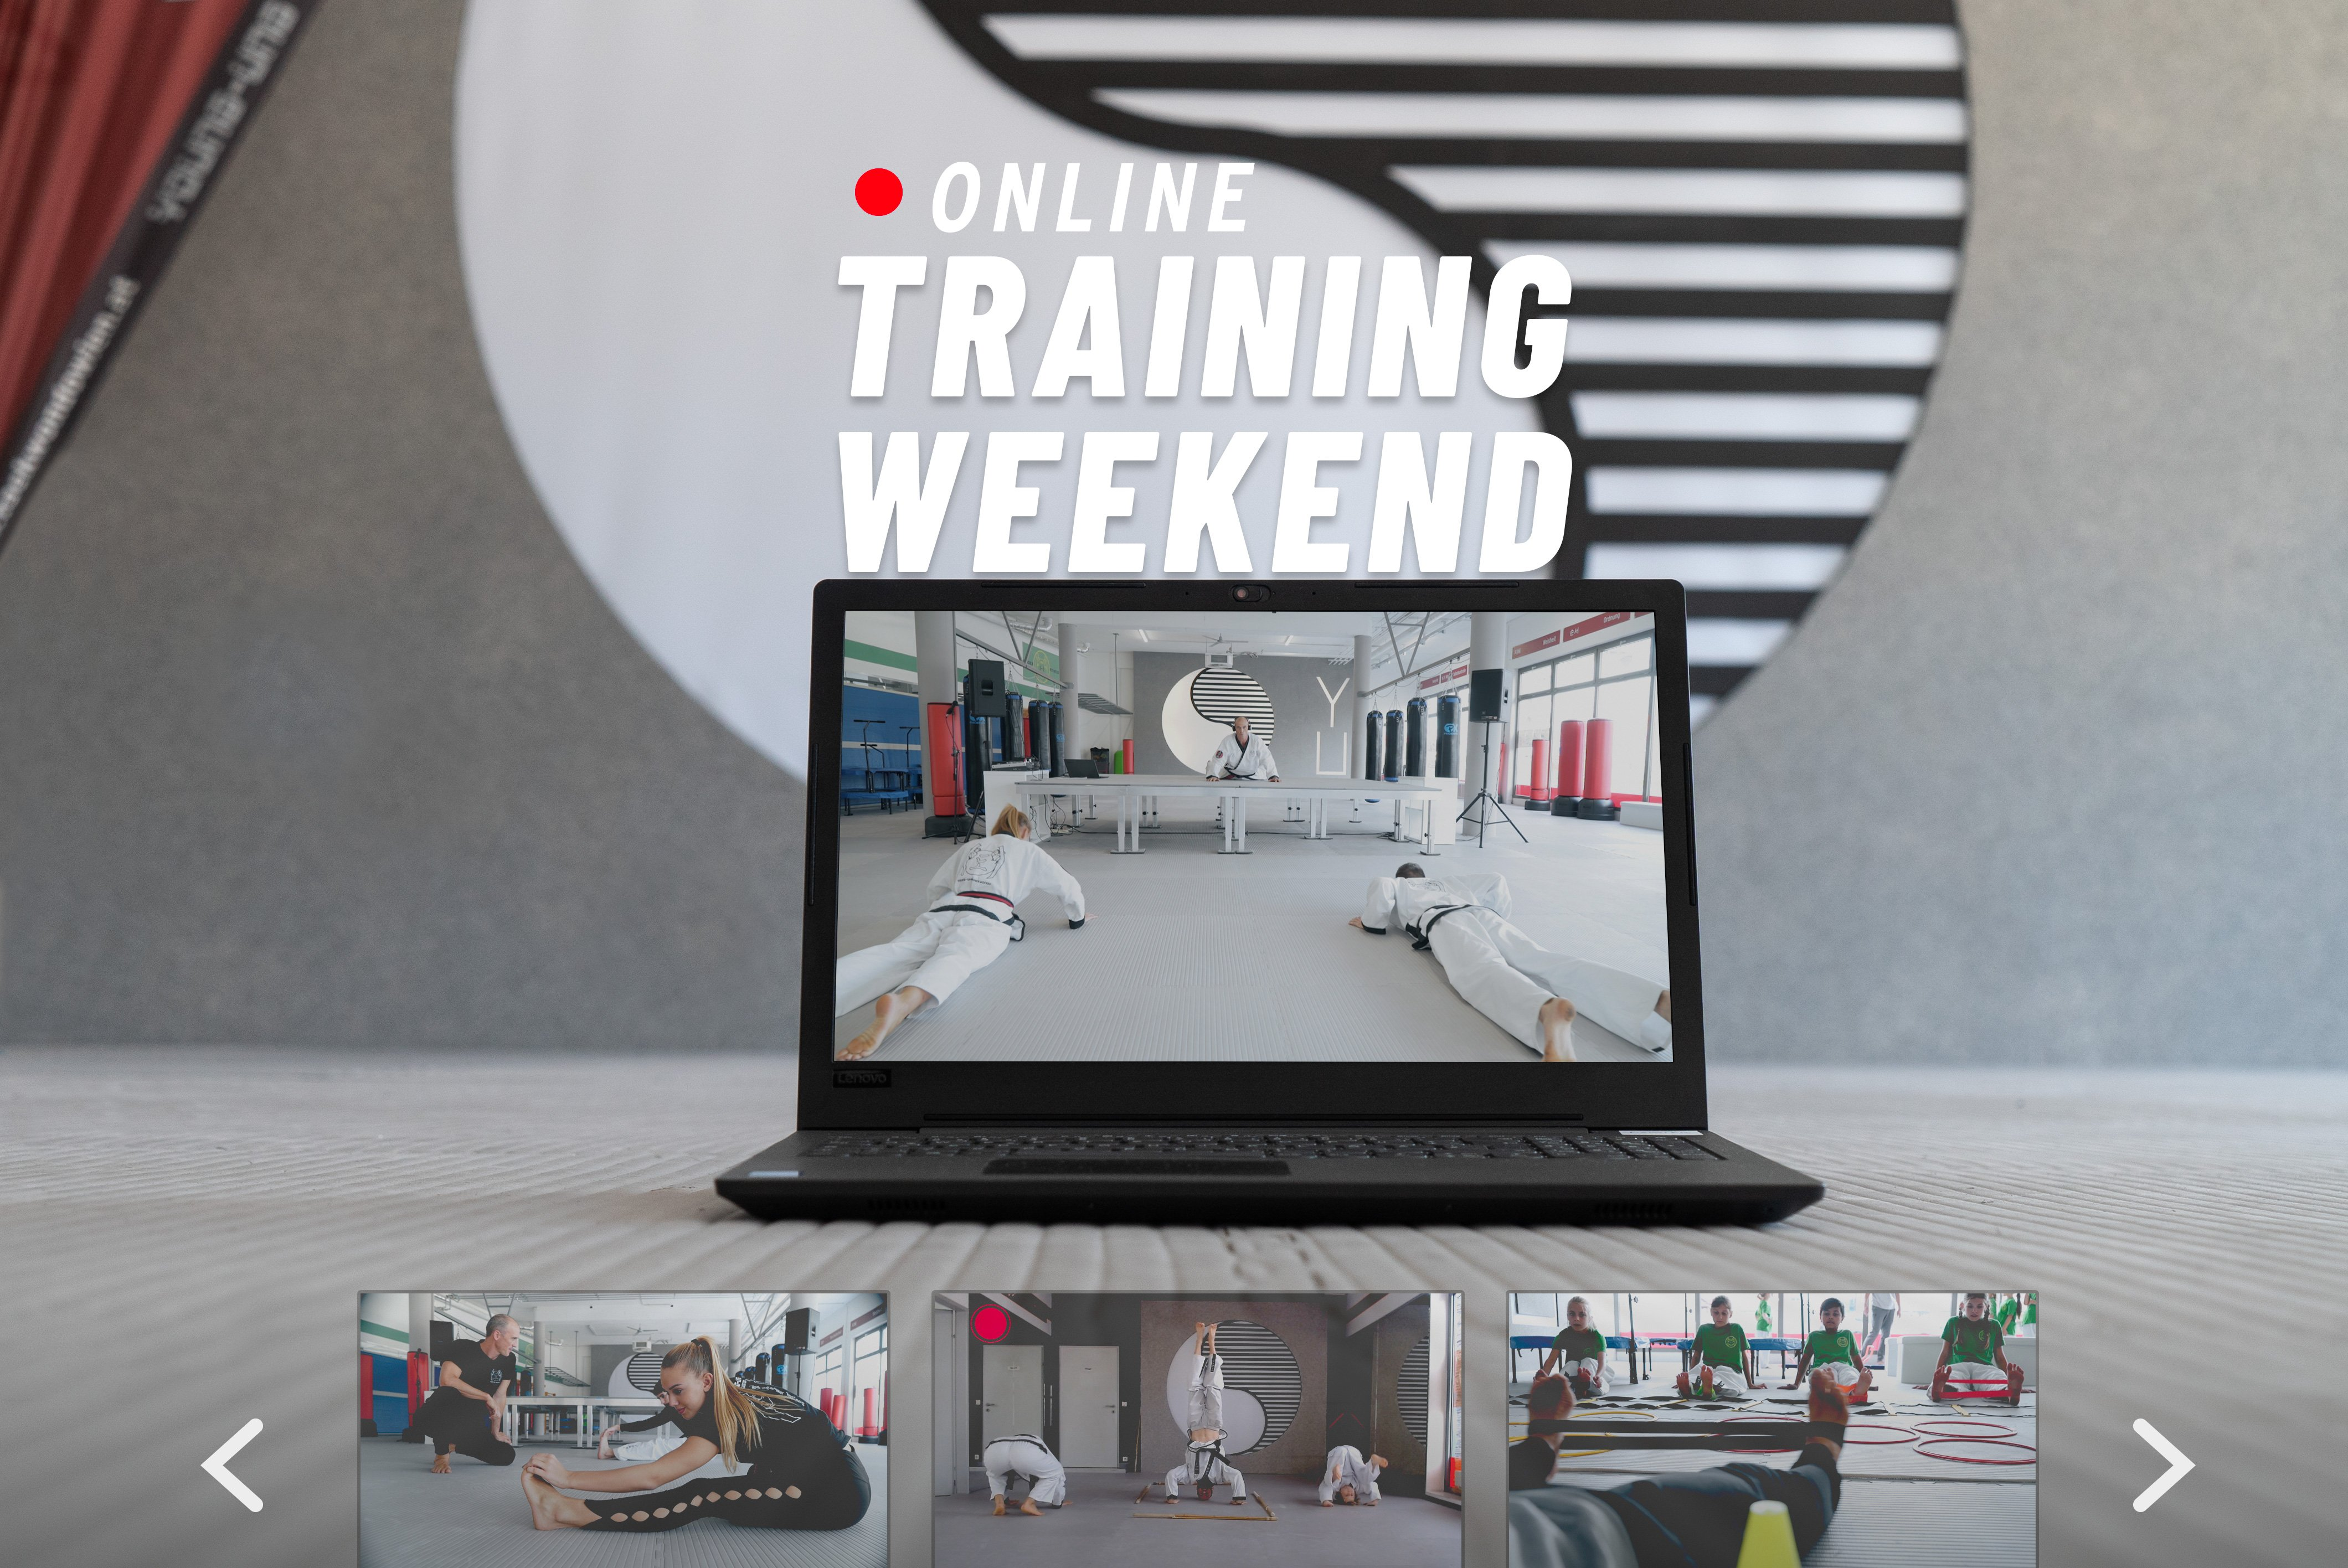 Bild zu Gratis: Online-Training-Weekend